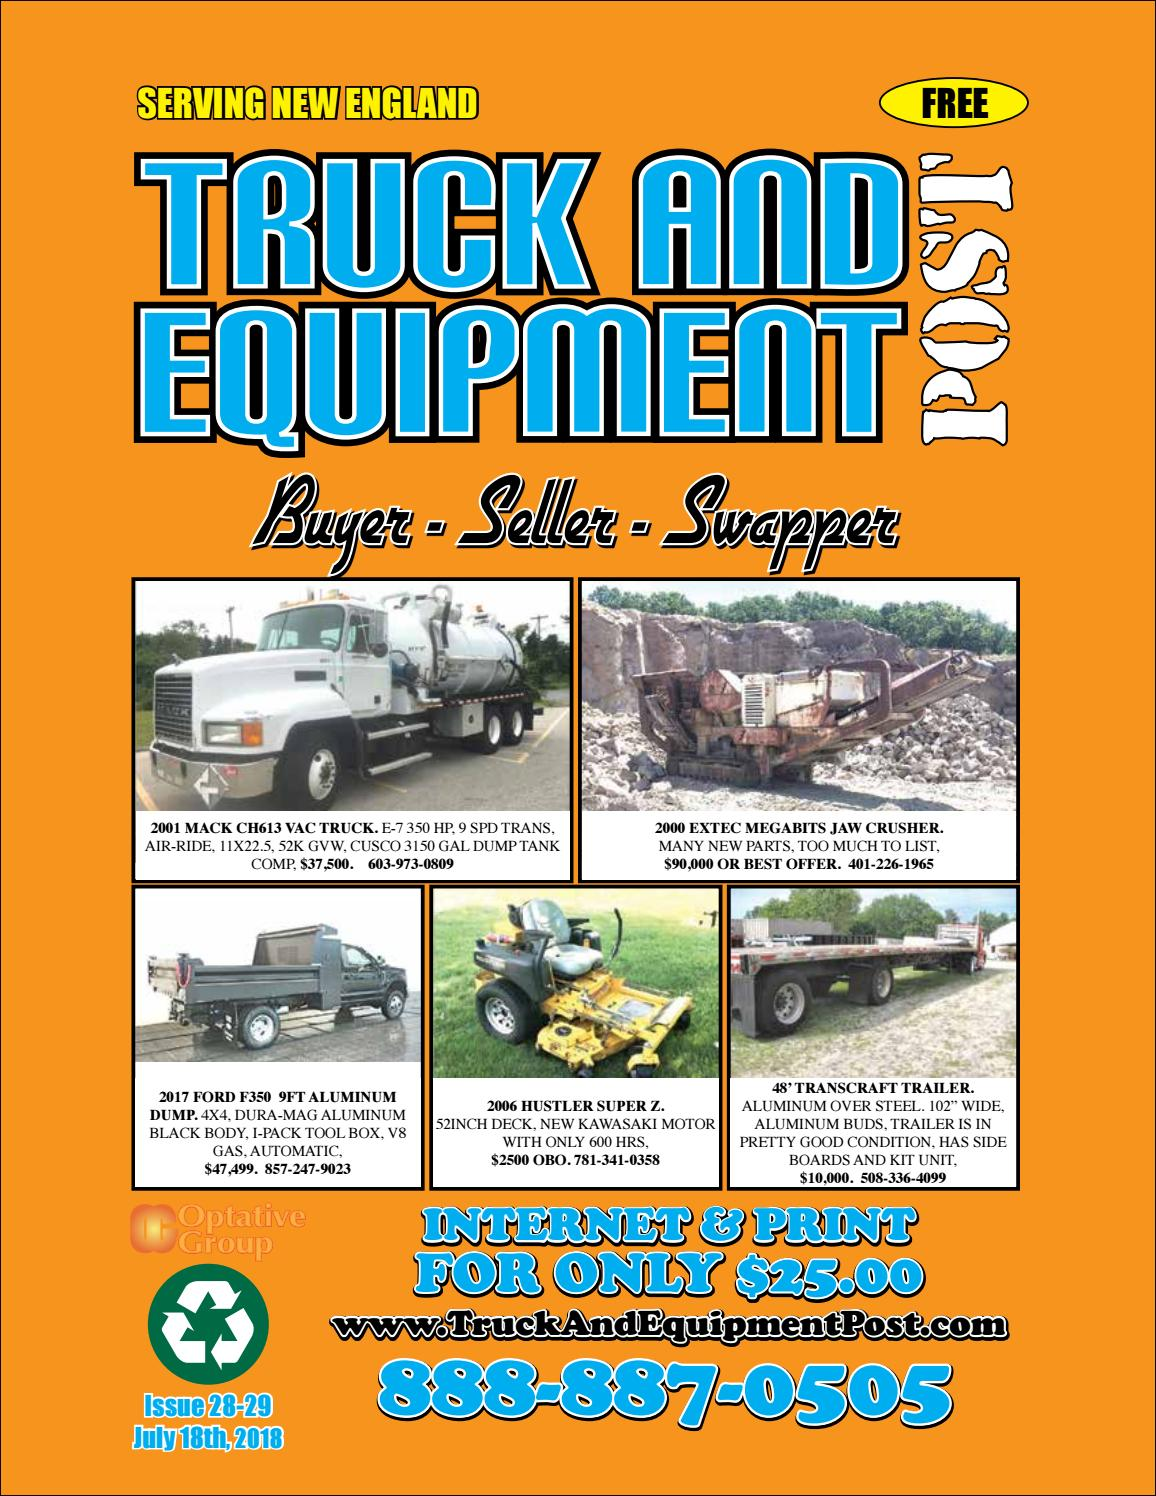 Truck equipment post 28 29 2018 by 1ClickAway - issuu